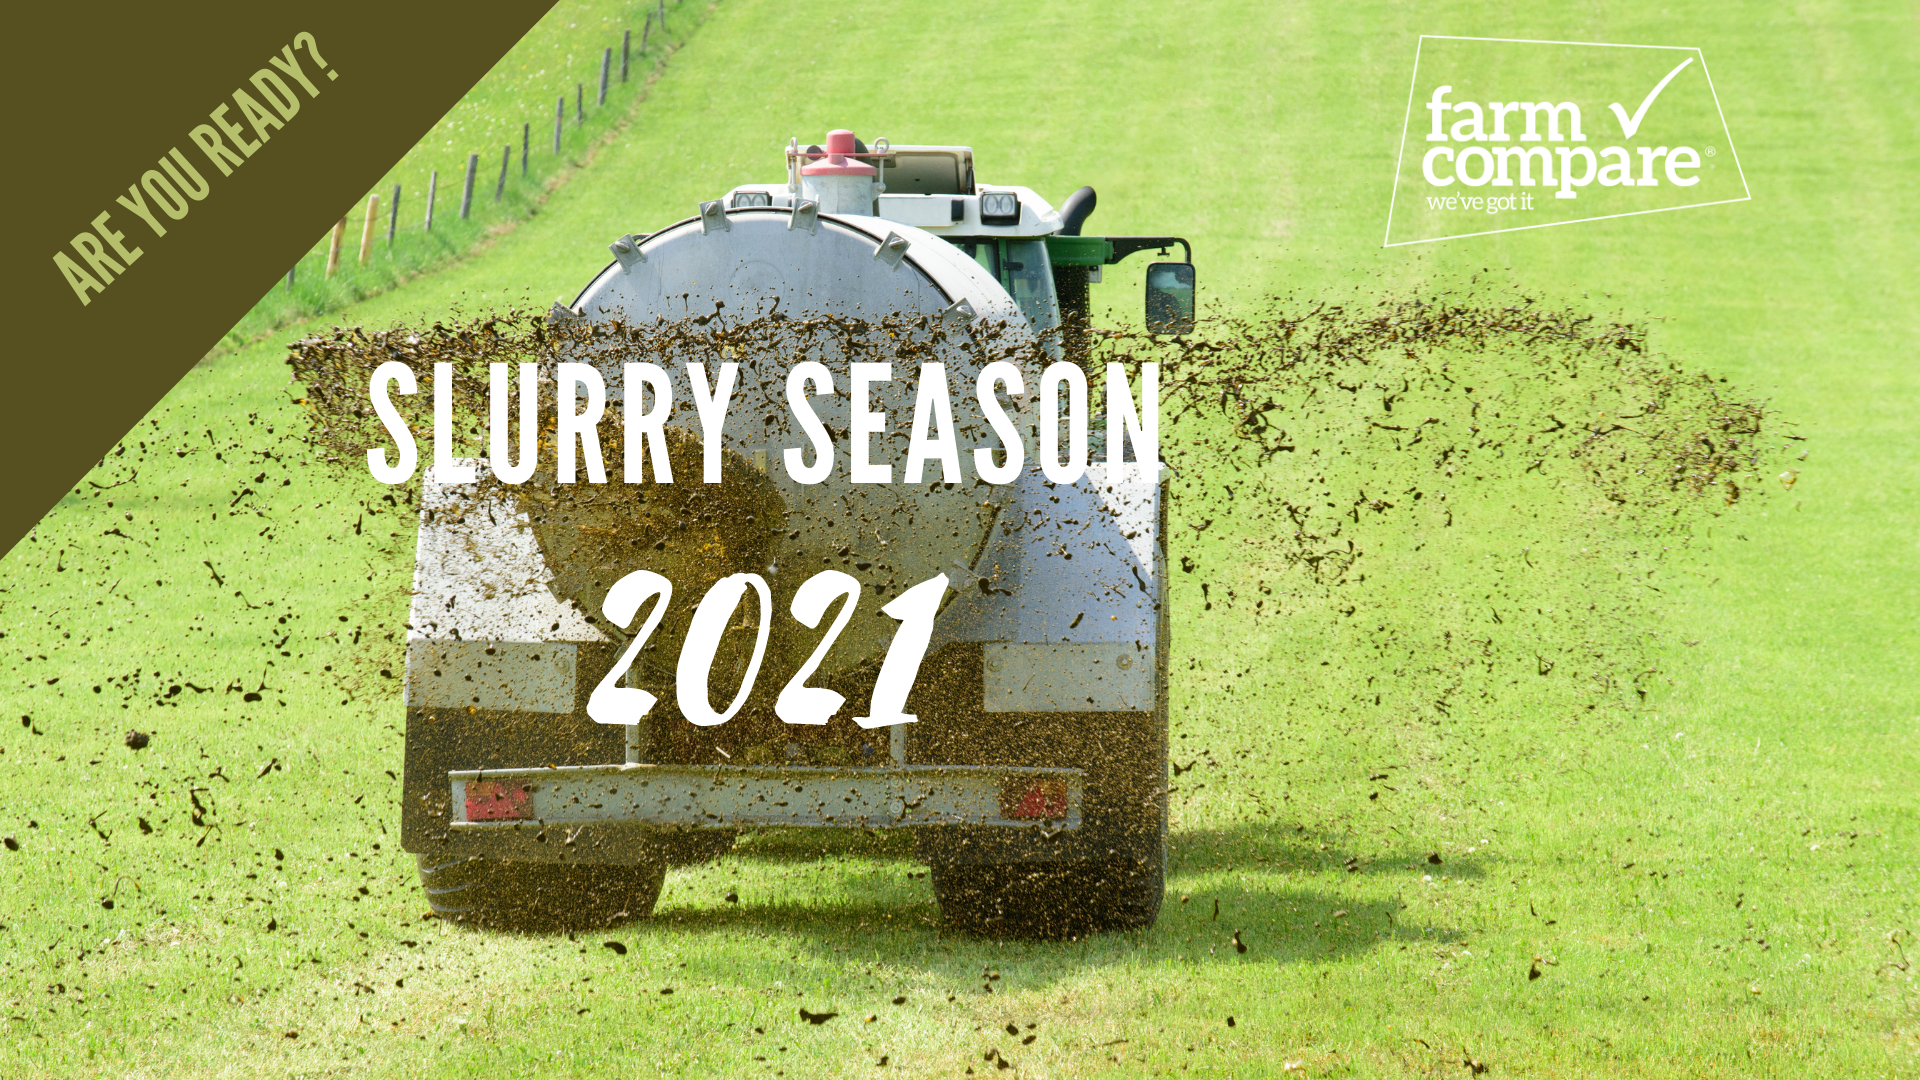 Are you ready for the 2021 slurry season?